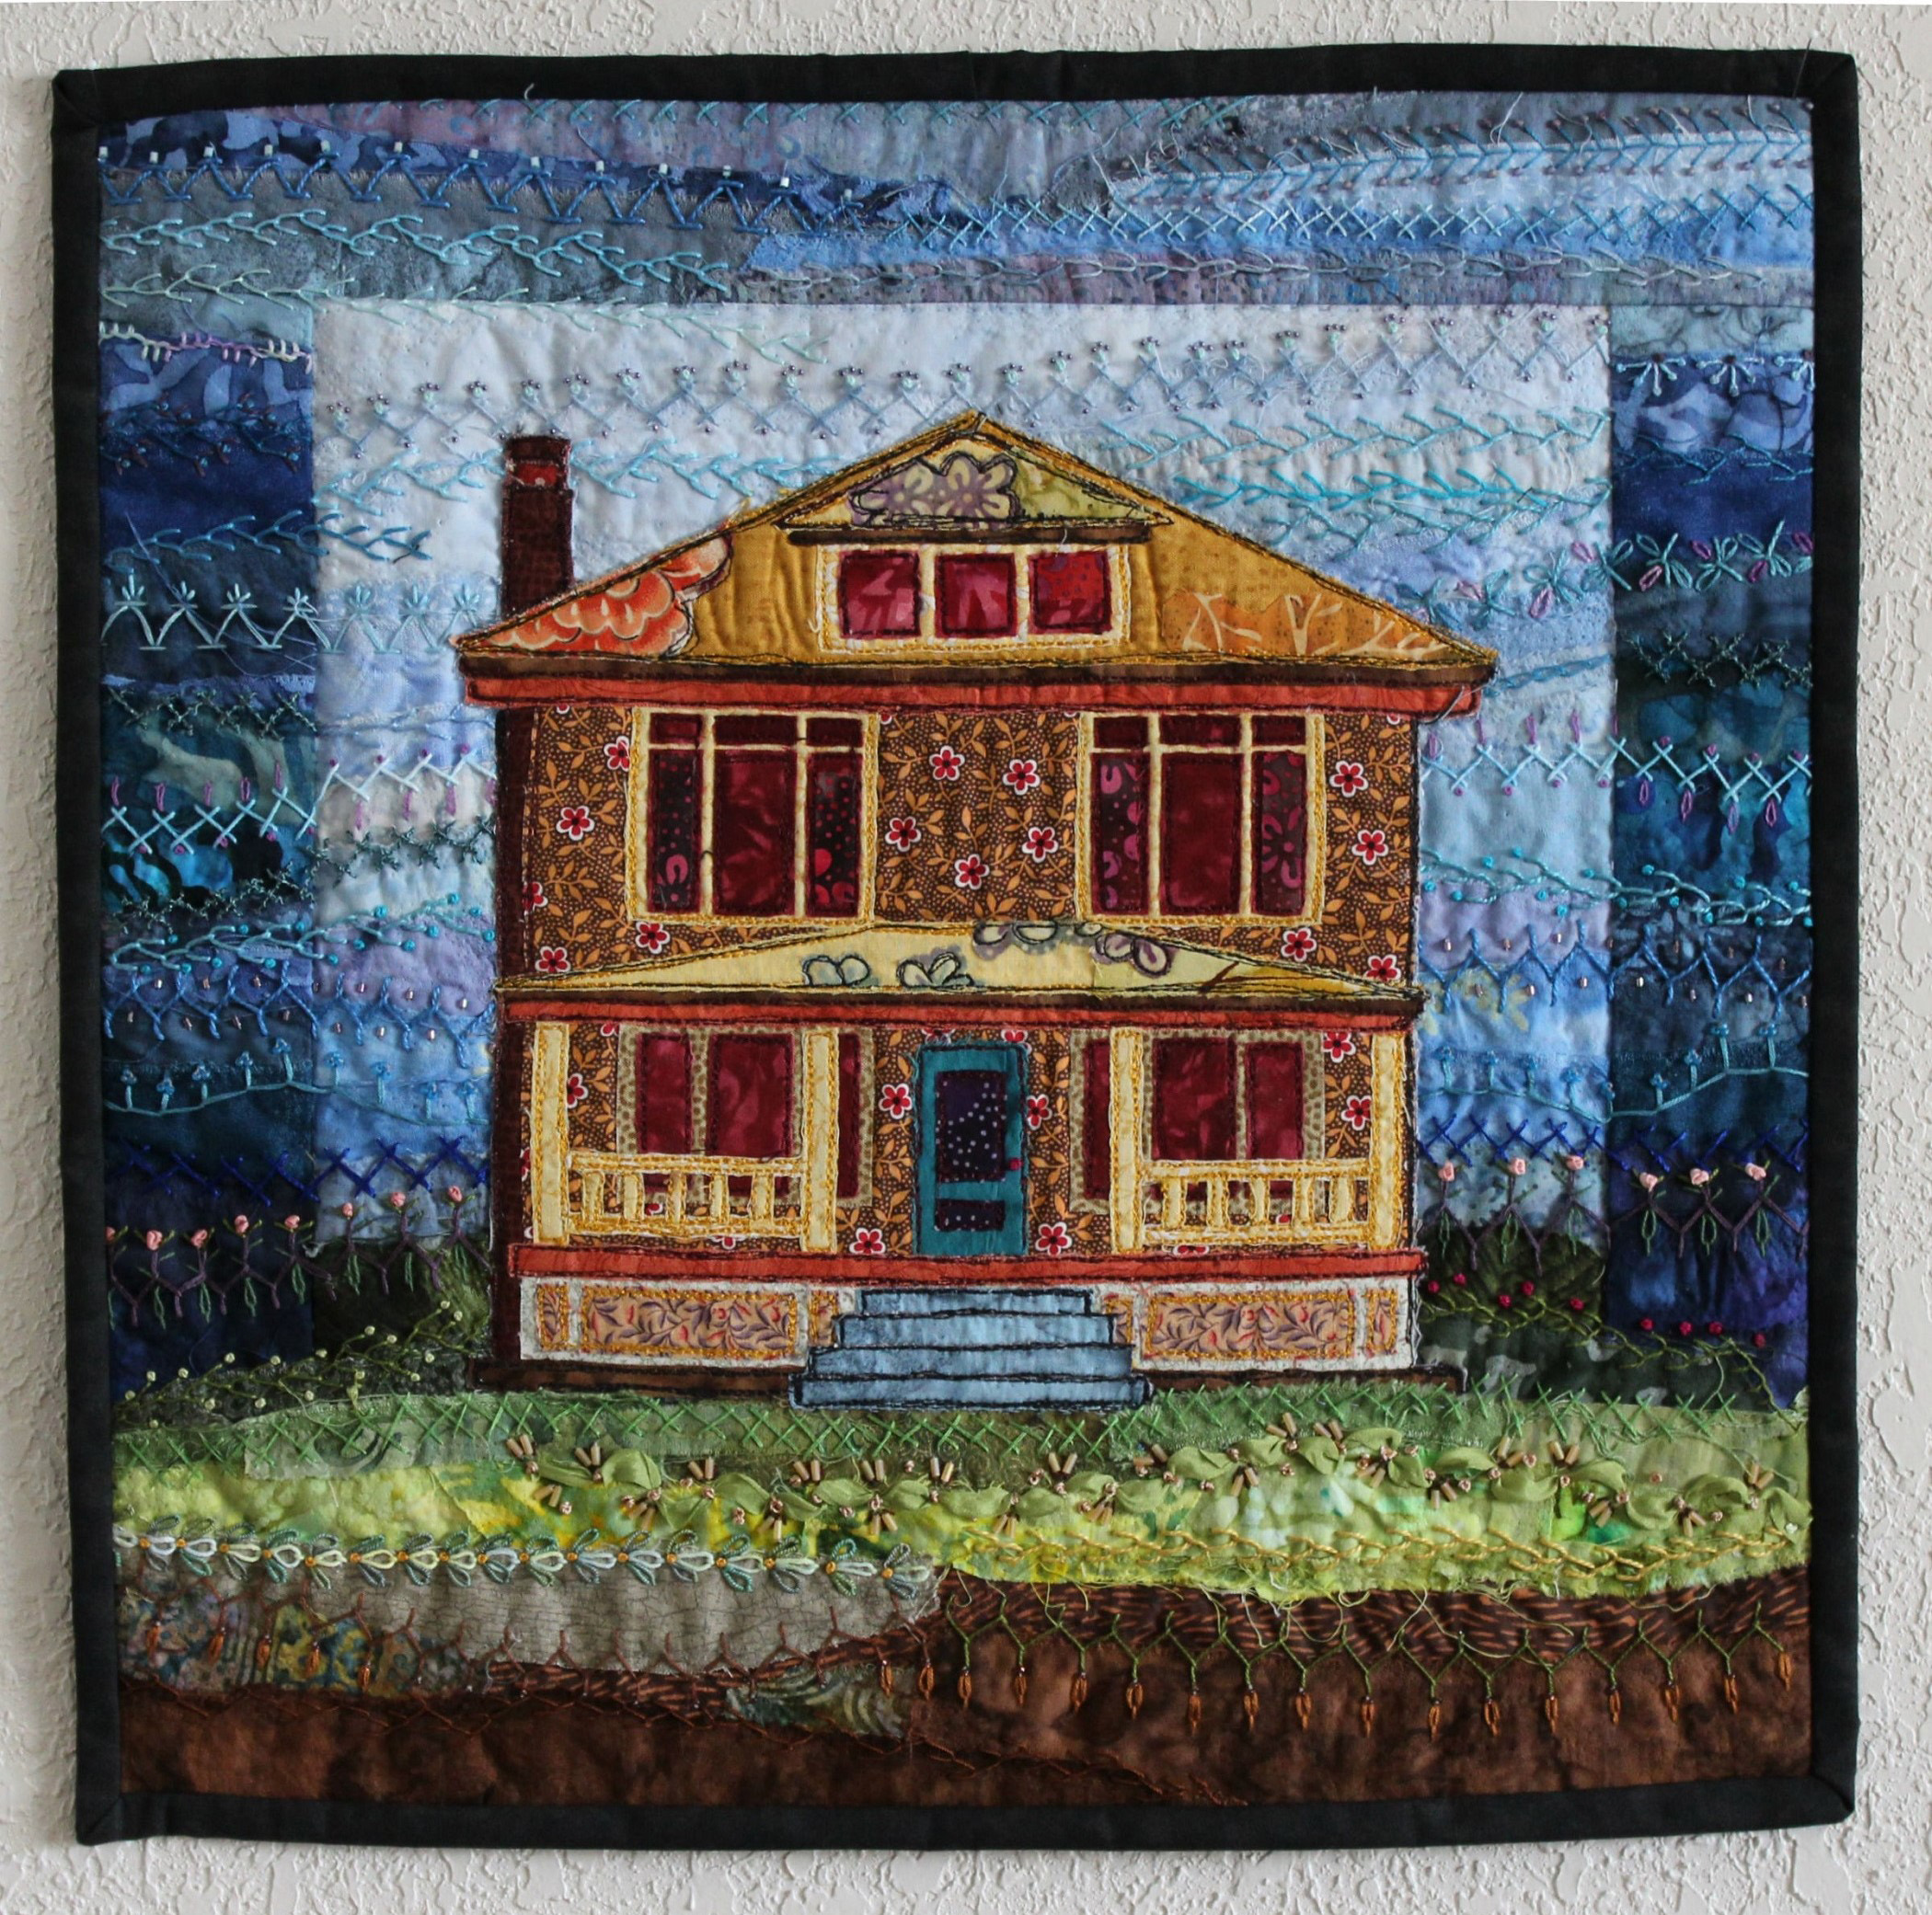 JUDGE'S CHOICE, <em>American Foursquare</em>, Amy Munson, Bismarck, ND